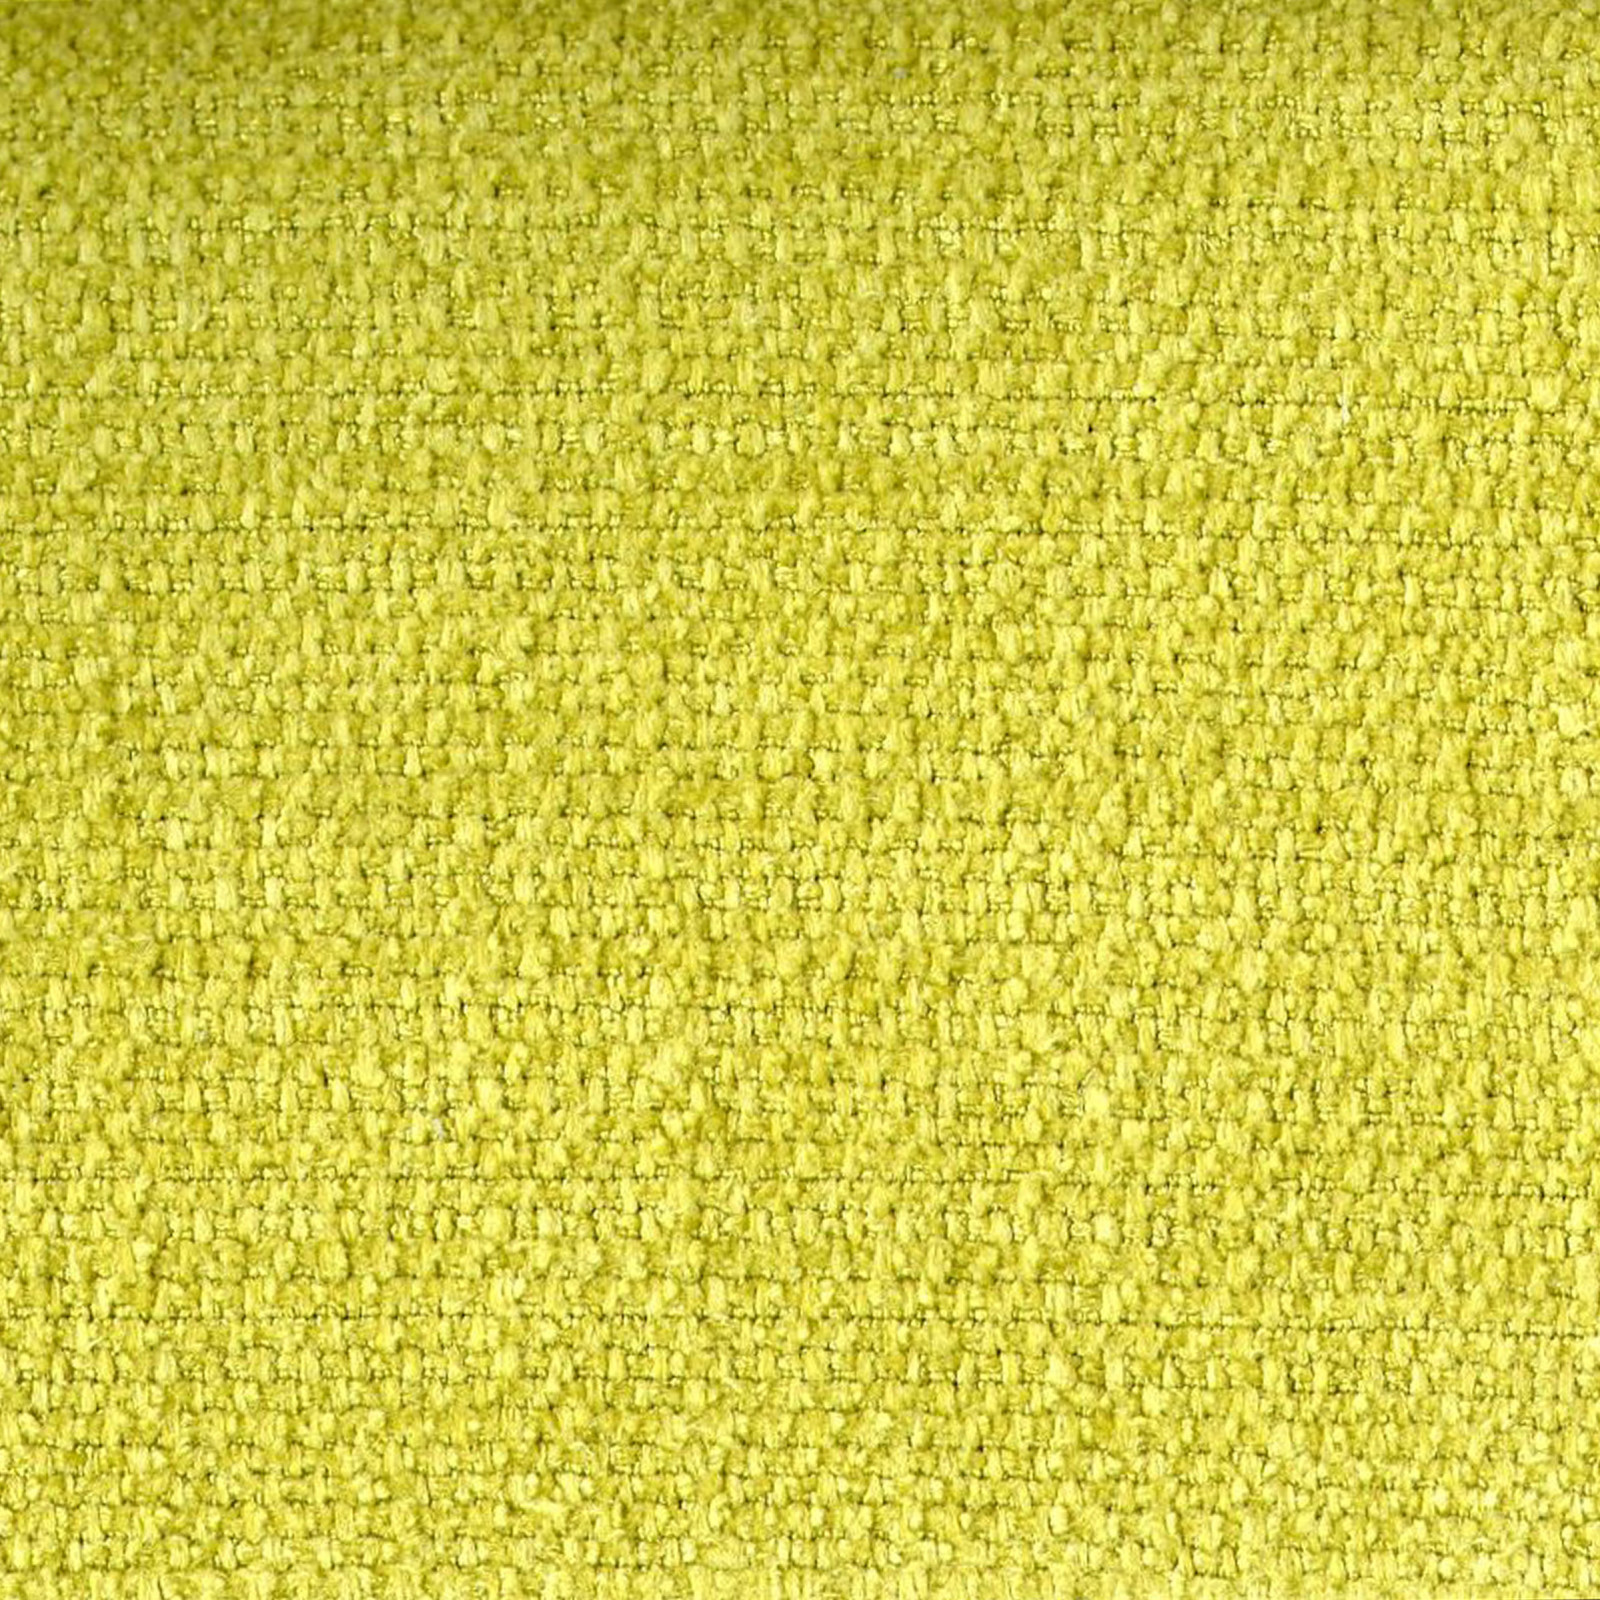 B9509 Acid Green Greenhouse Fabrics